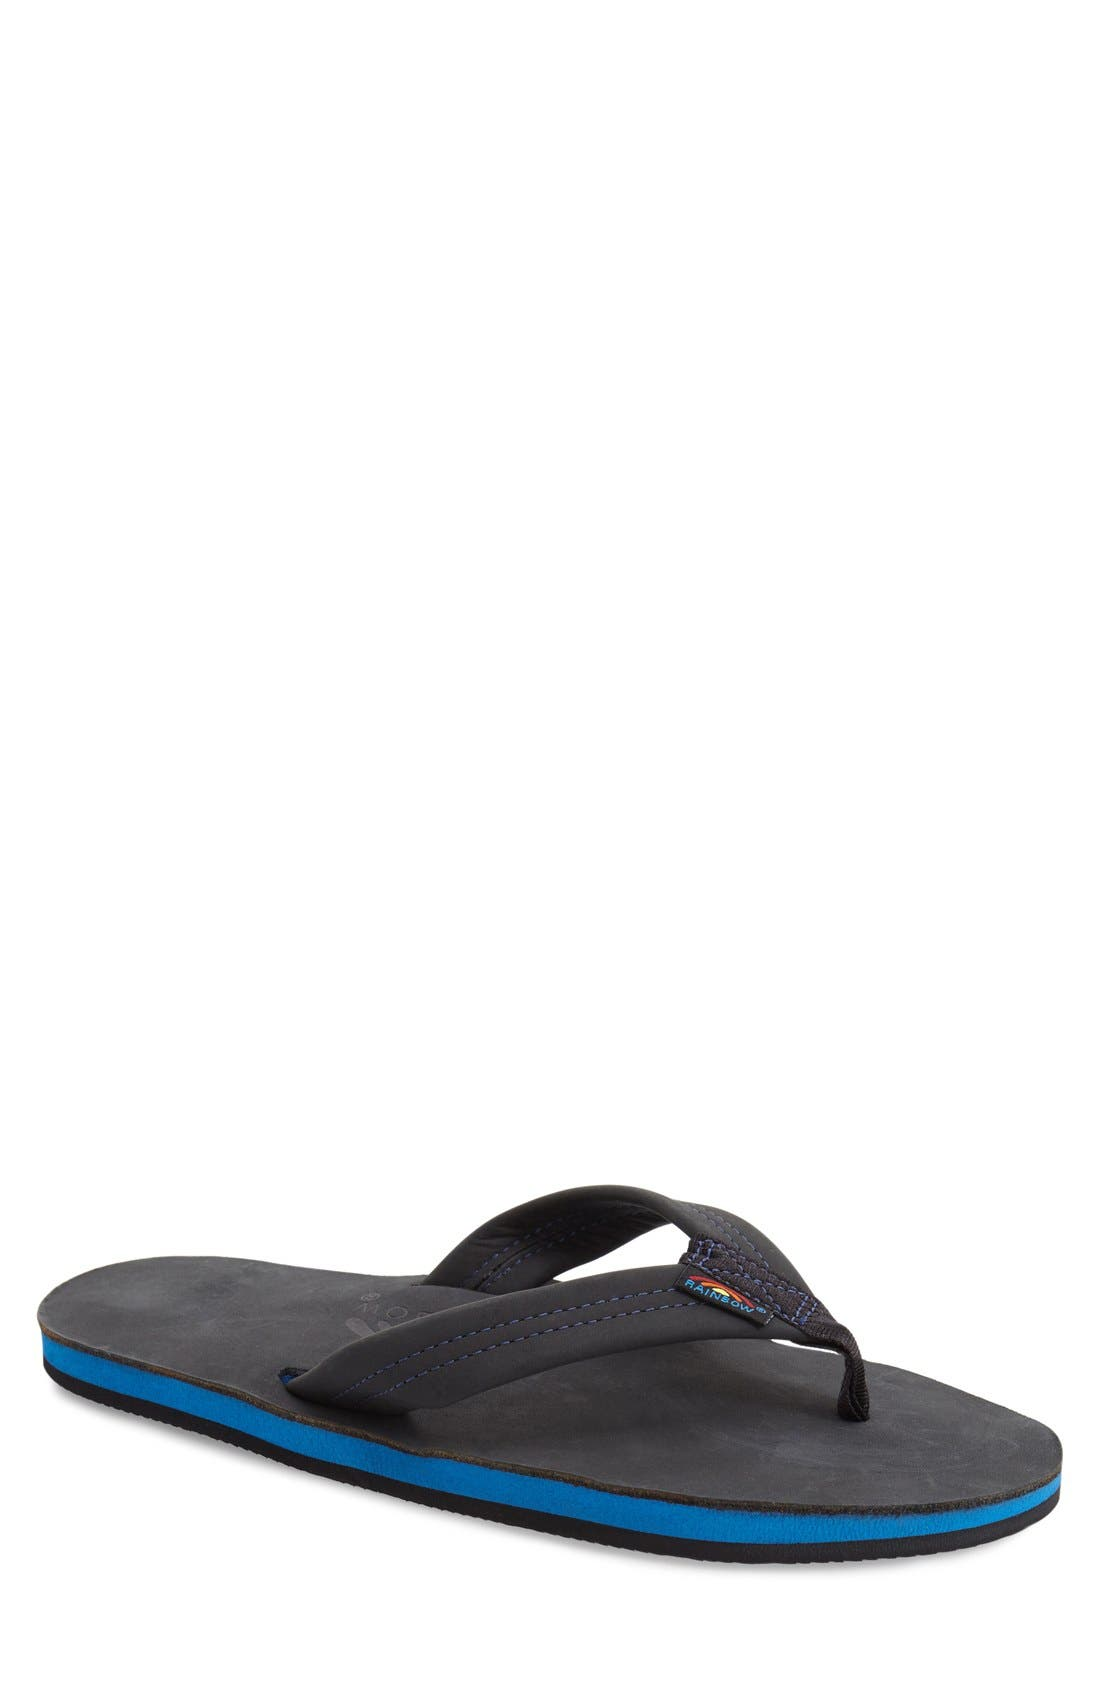 '301Blue' Flip Flop,                         Main,                         color, Premier Black/ Blue Midsole